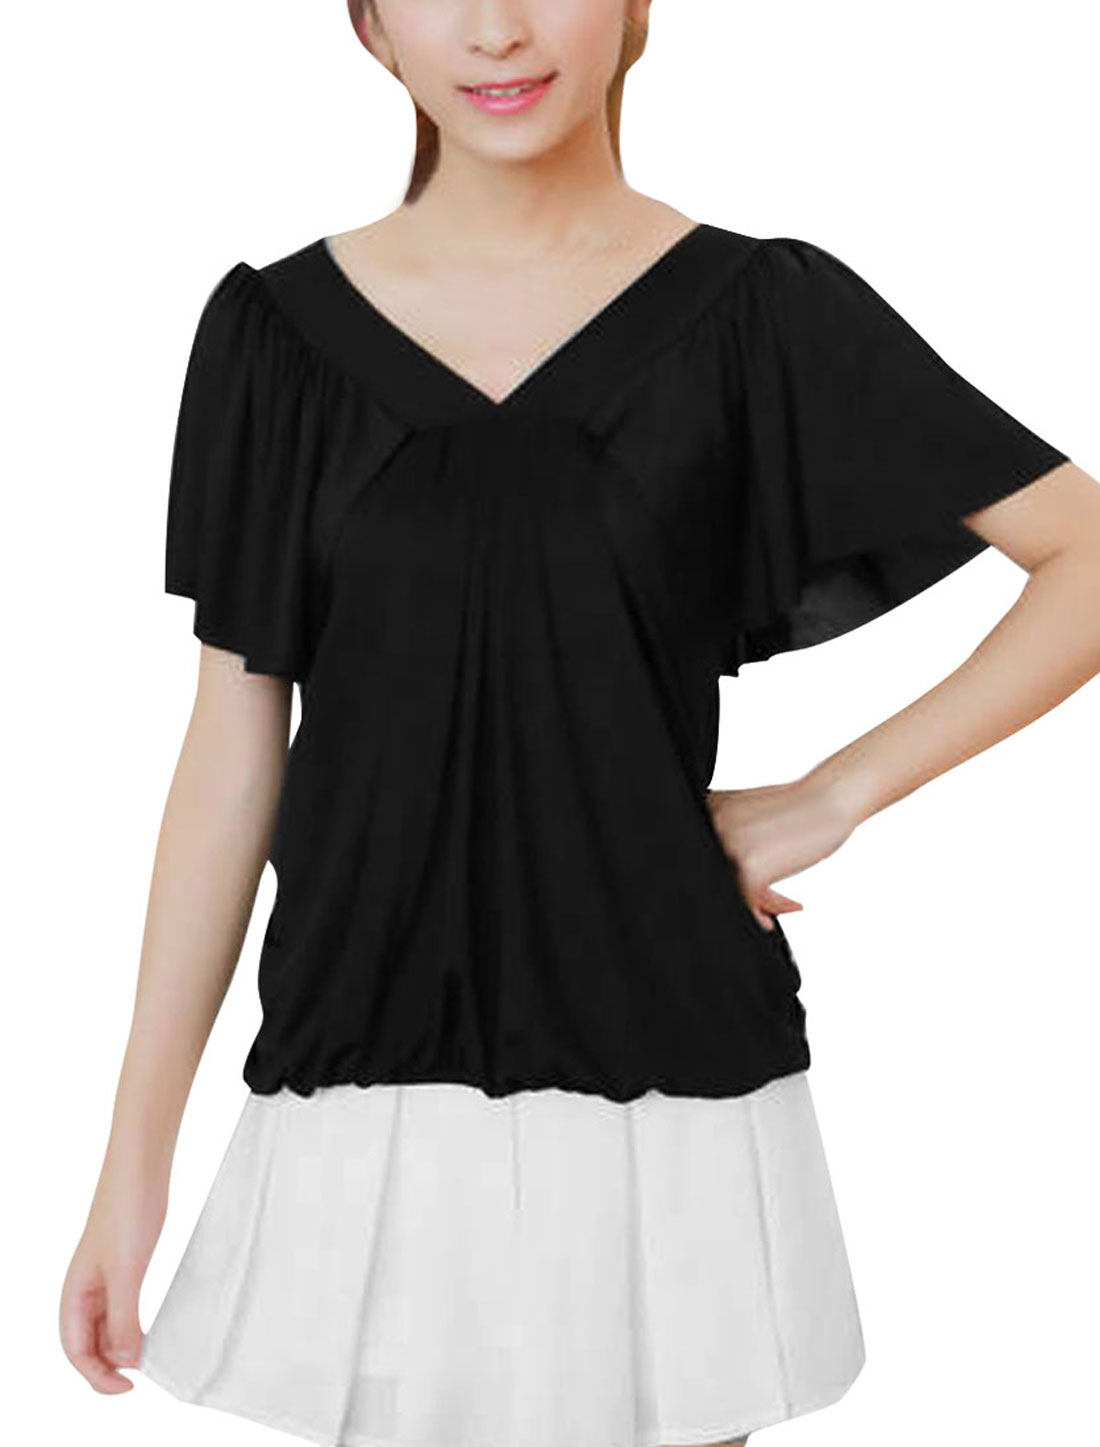 Woman New Fashion V Neck Short Flutter Sleeve Black Casual Shirt XS